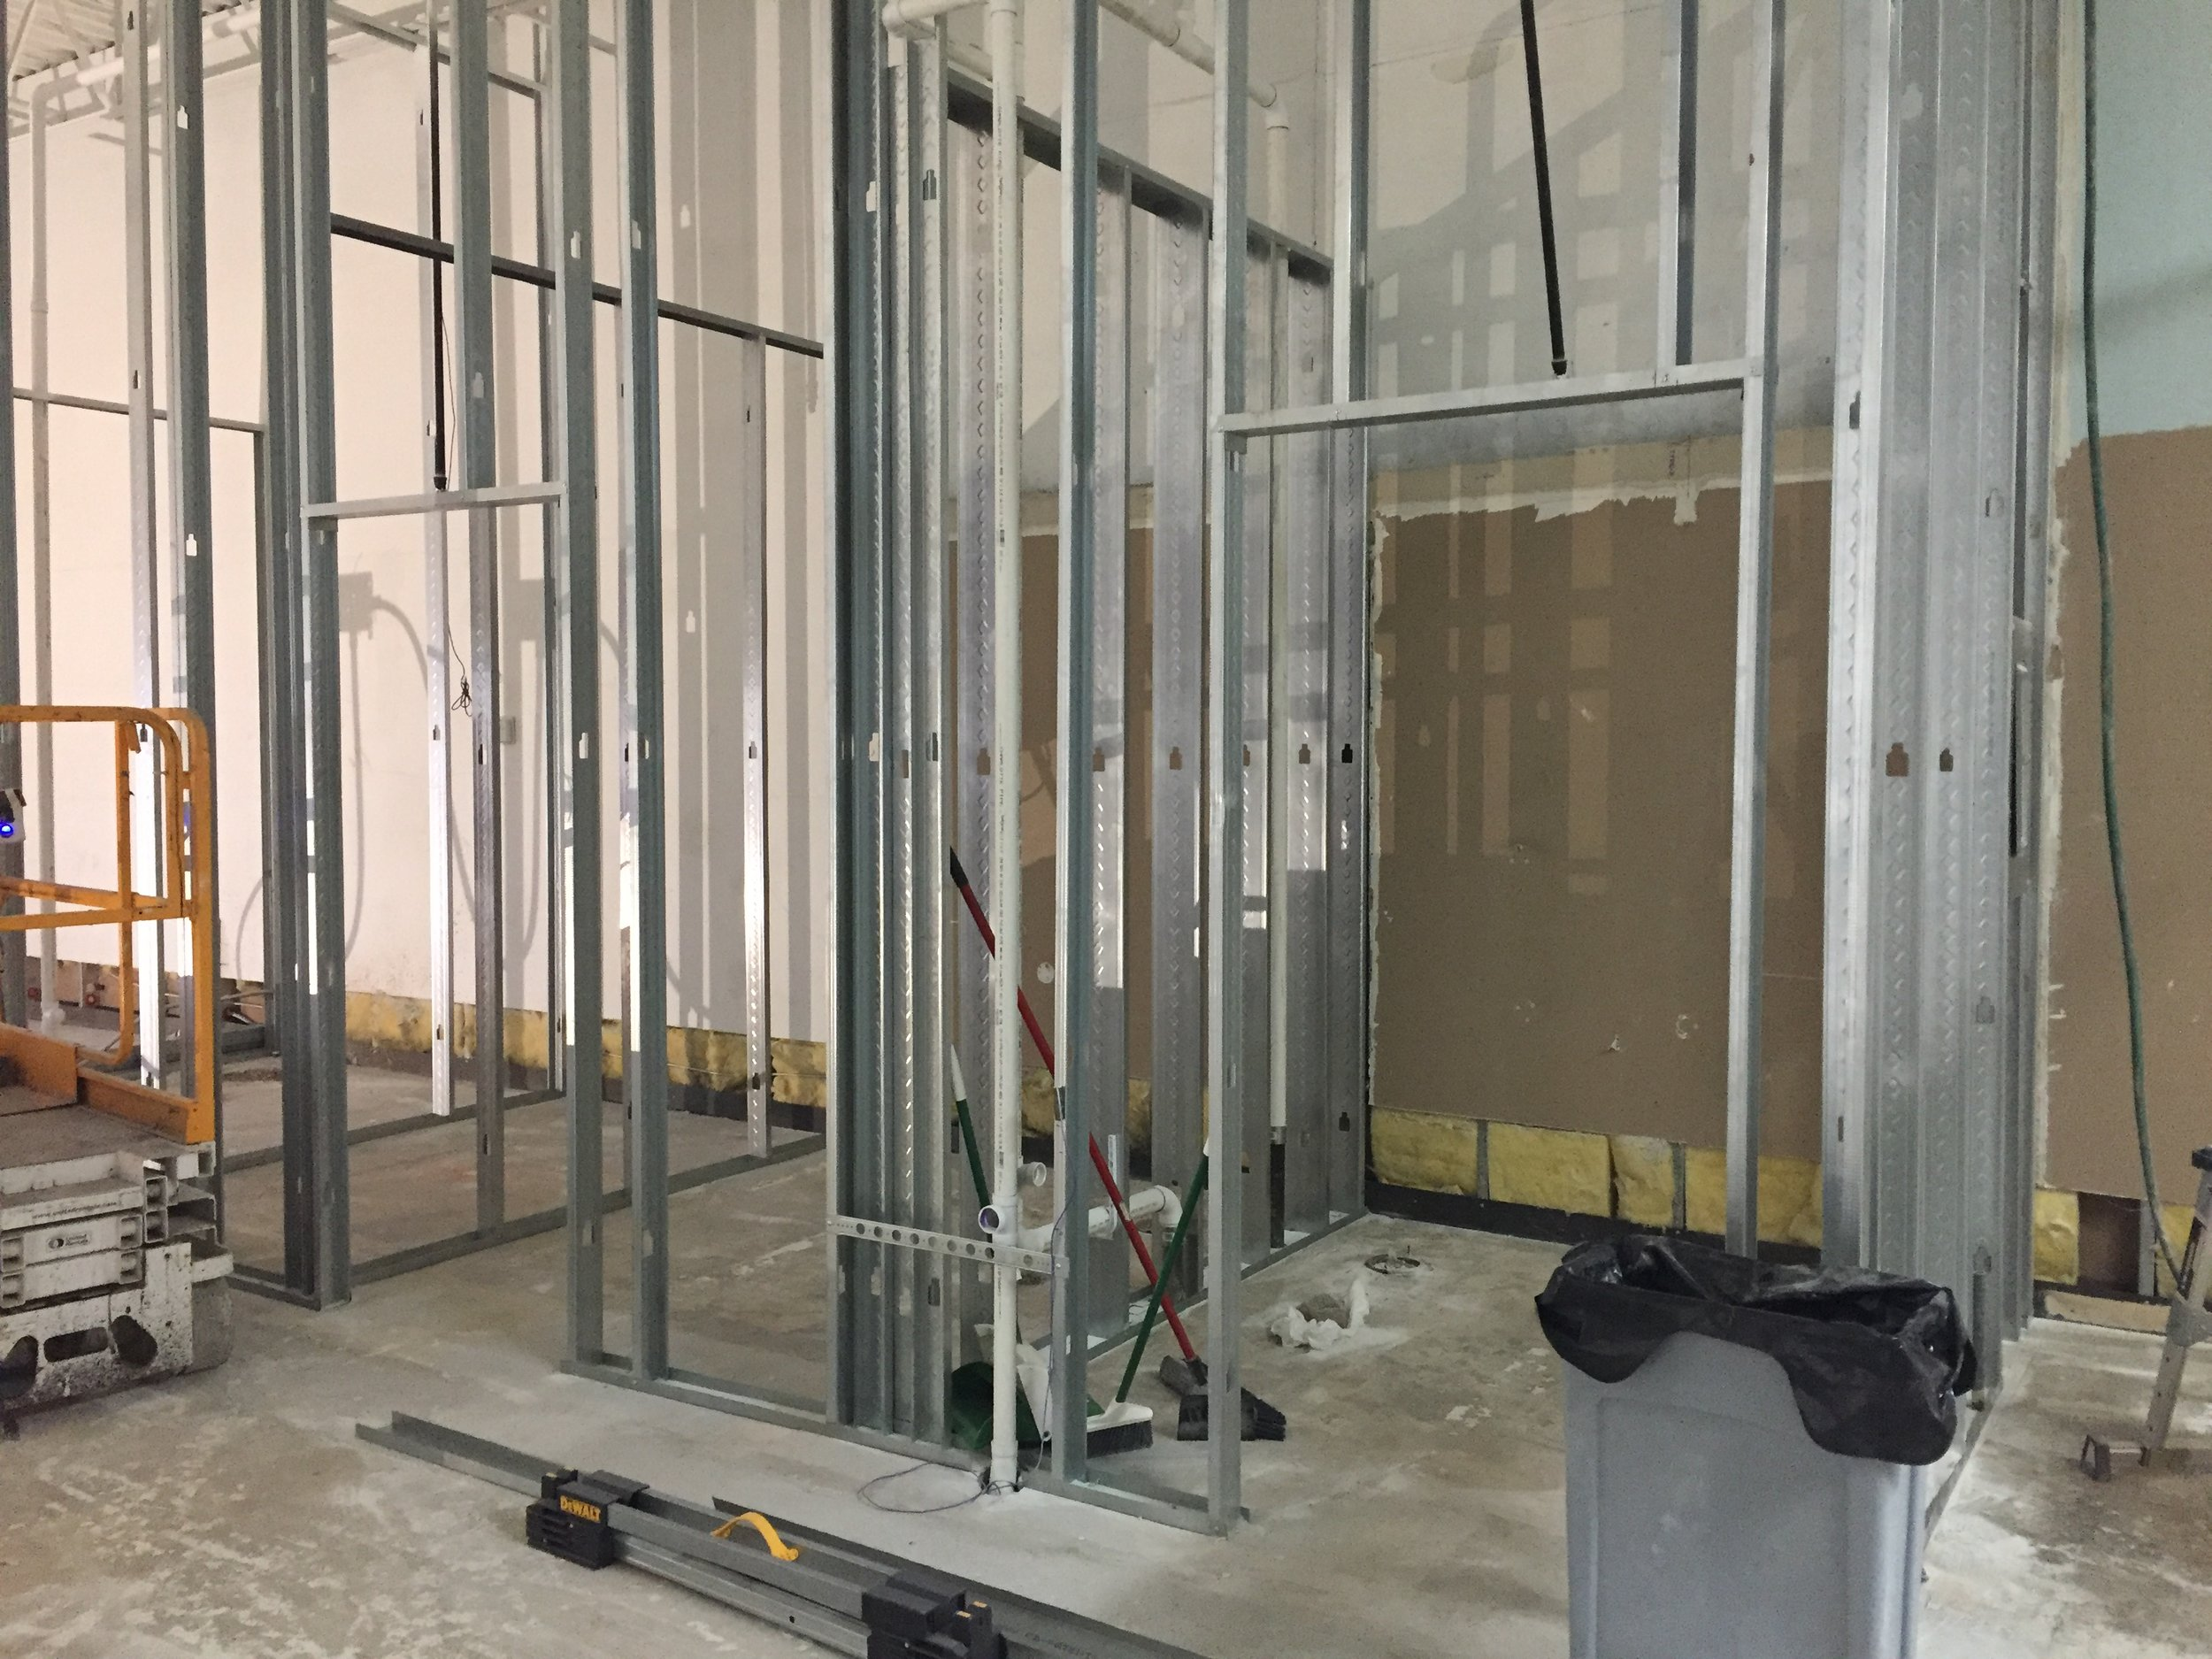 Restrooms with plumbing & framing complete!